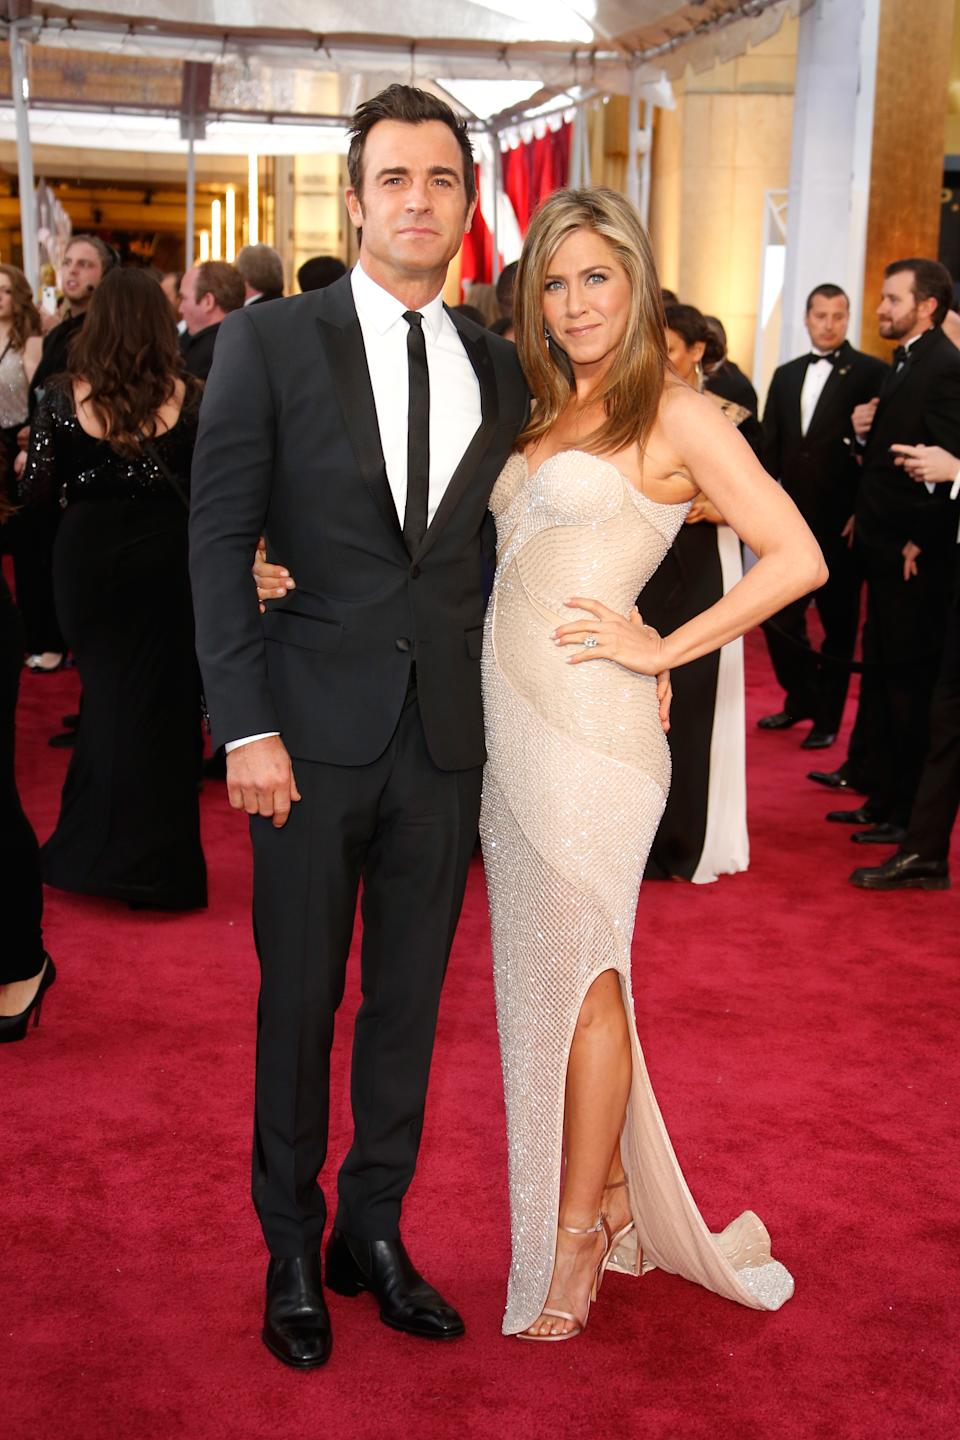 Aniston was the picture of Hollywood glamour in a sparkling Versace gown with then-fiancé Justin Theroux at the 87th Academy Awards in 2015. (Image via Getty Images)